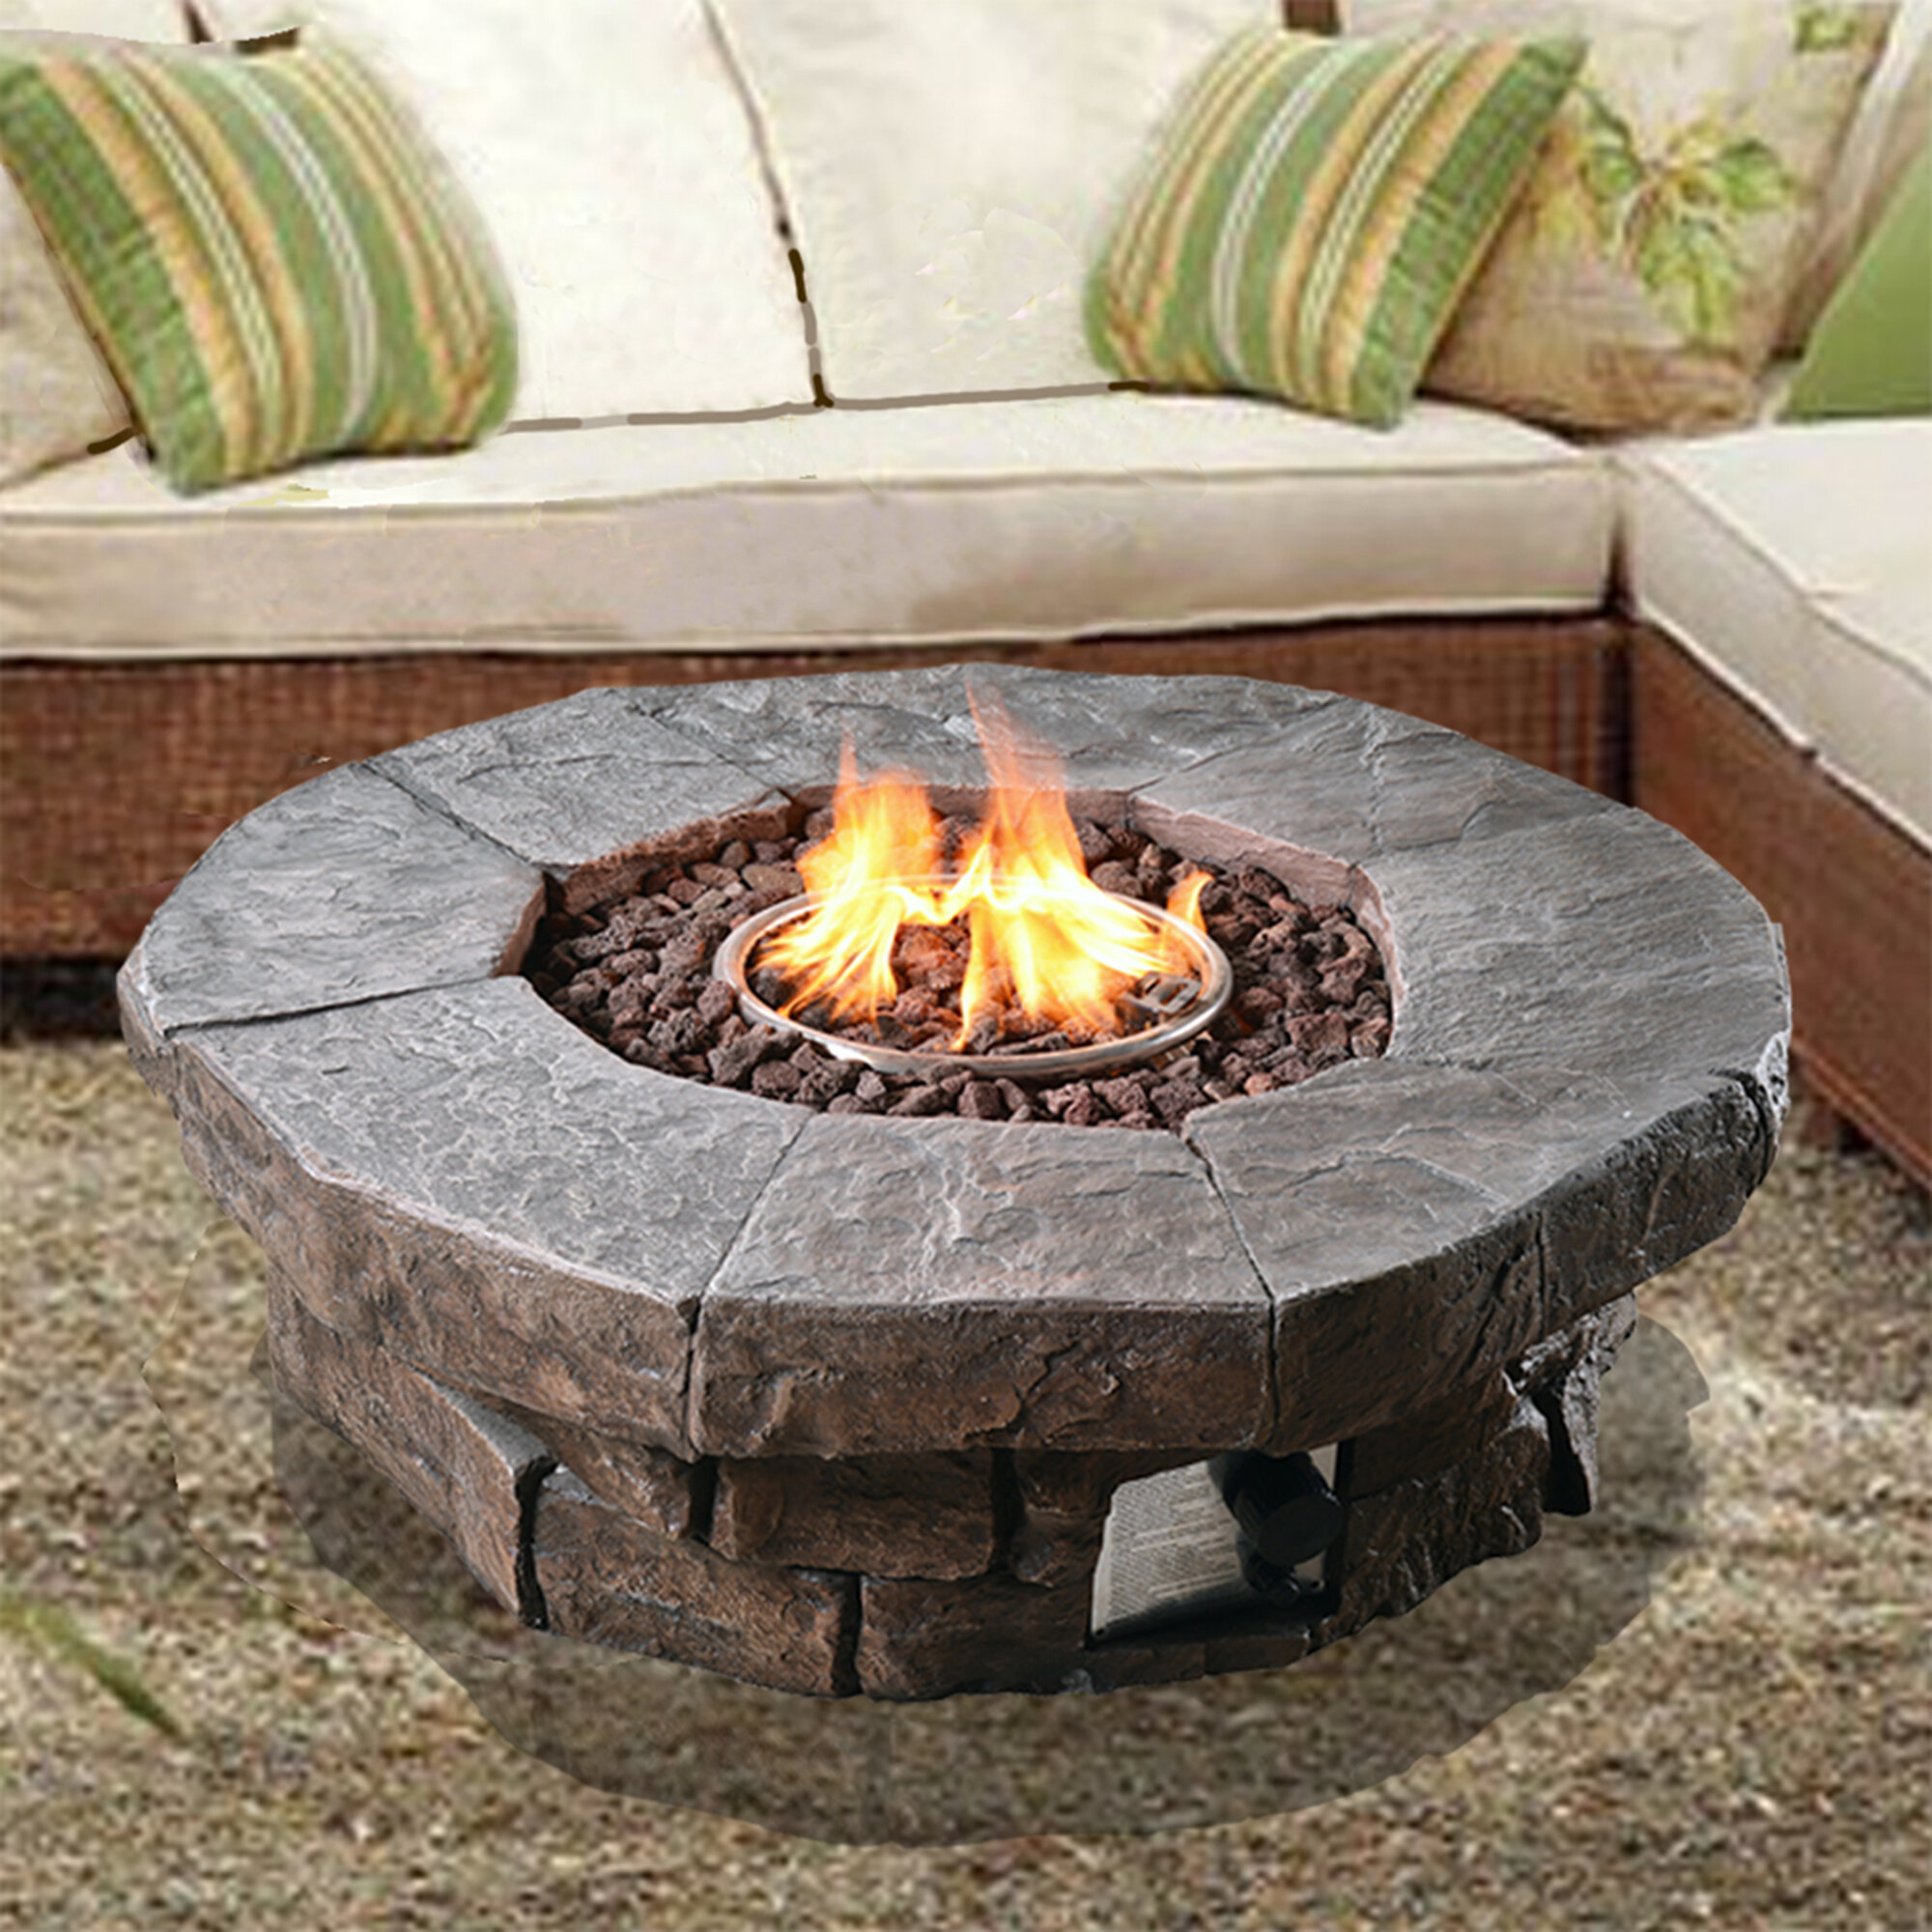 Outdoor Propane Fire Pit.Annabesook Stone Propane Fire Pit